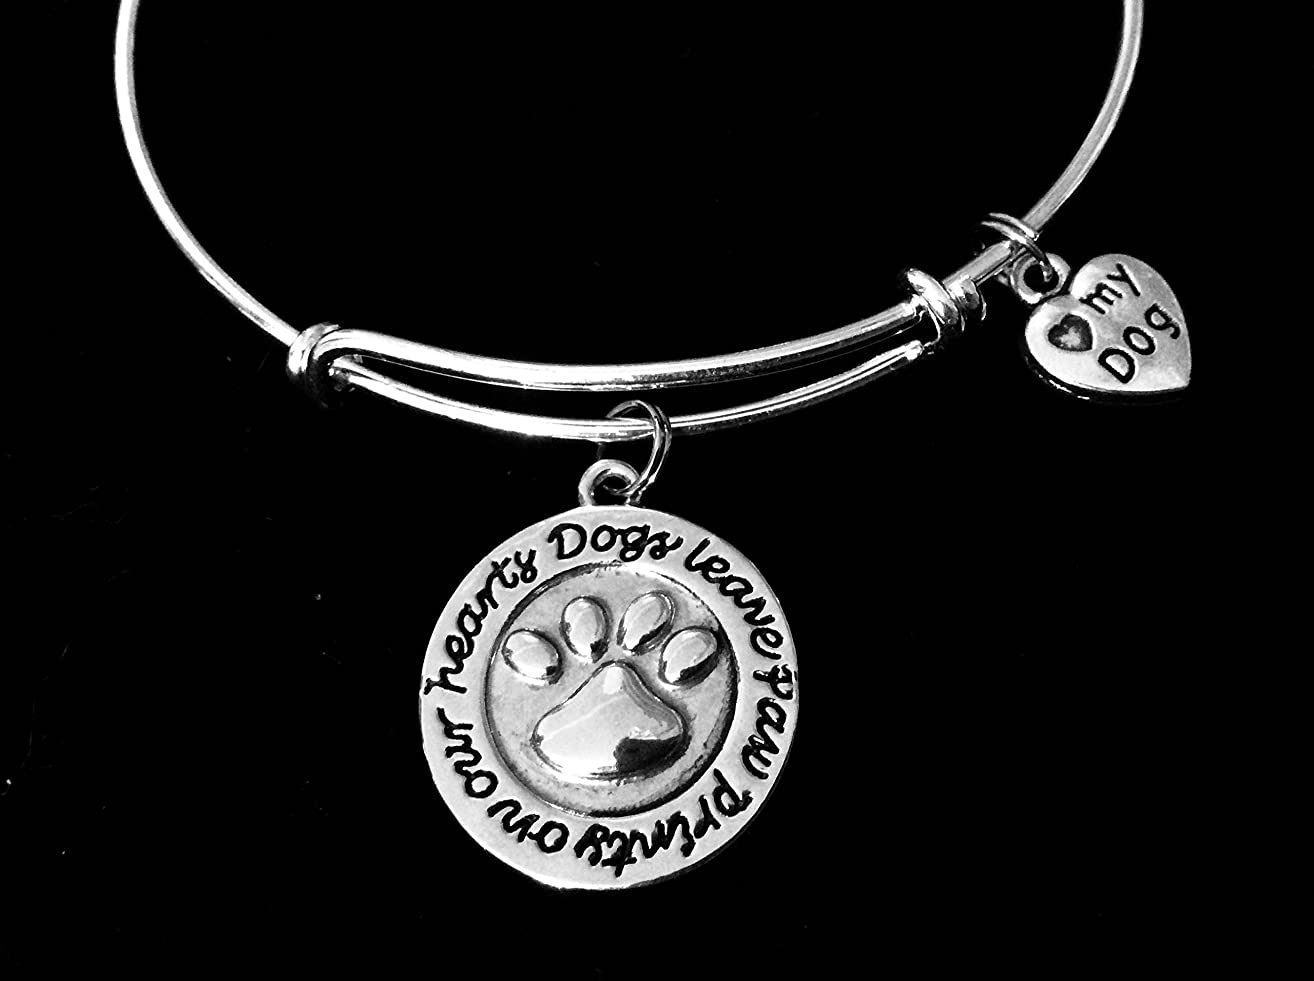 Love My Dog Jewelry Dogs Leave Paw Prints on our Heart Charm Adjustable Bracelet Silver Expandable Charm Bangle Animal Lover One Size Fits All Gift Custom Options Available